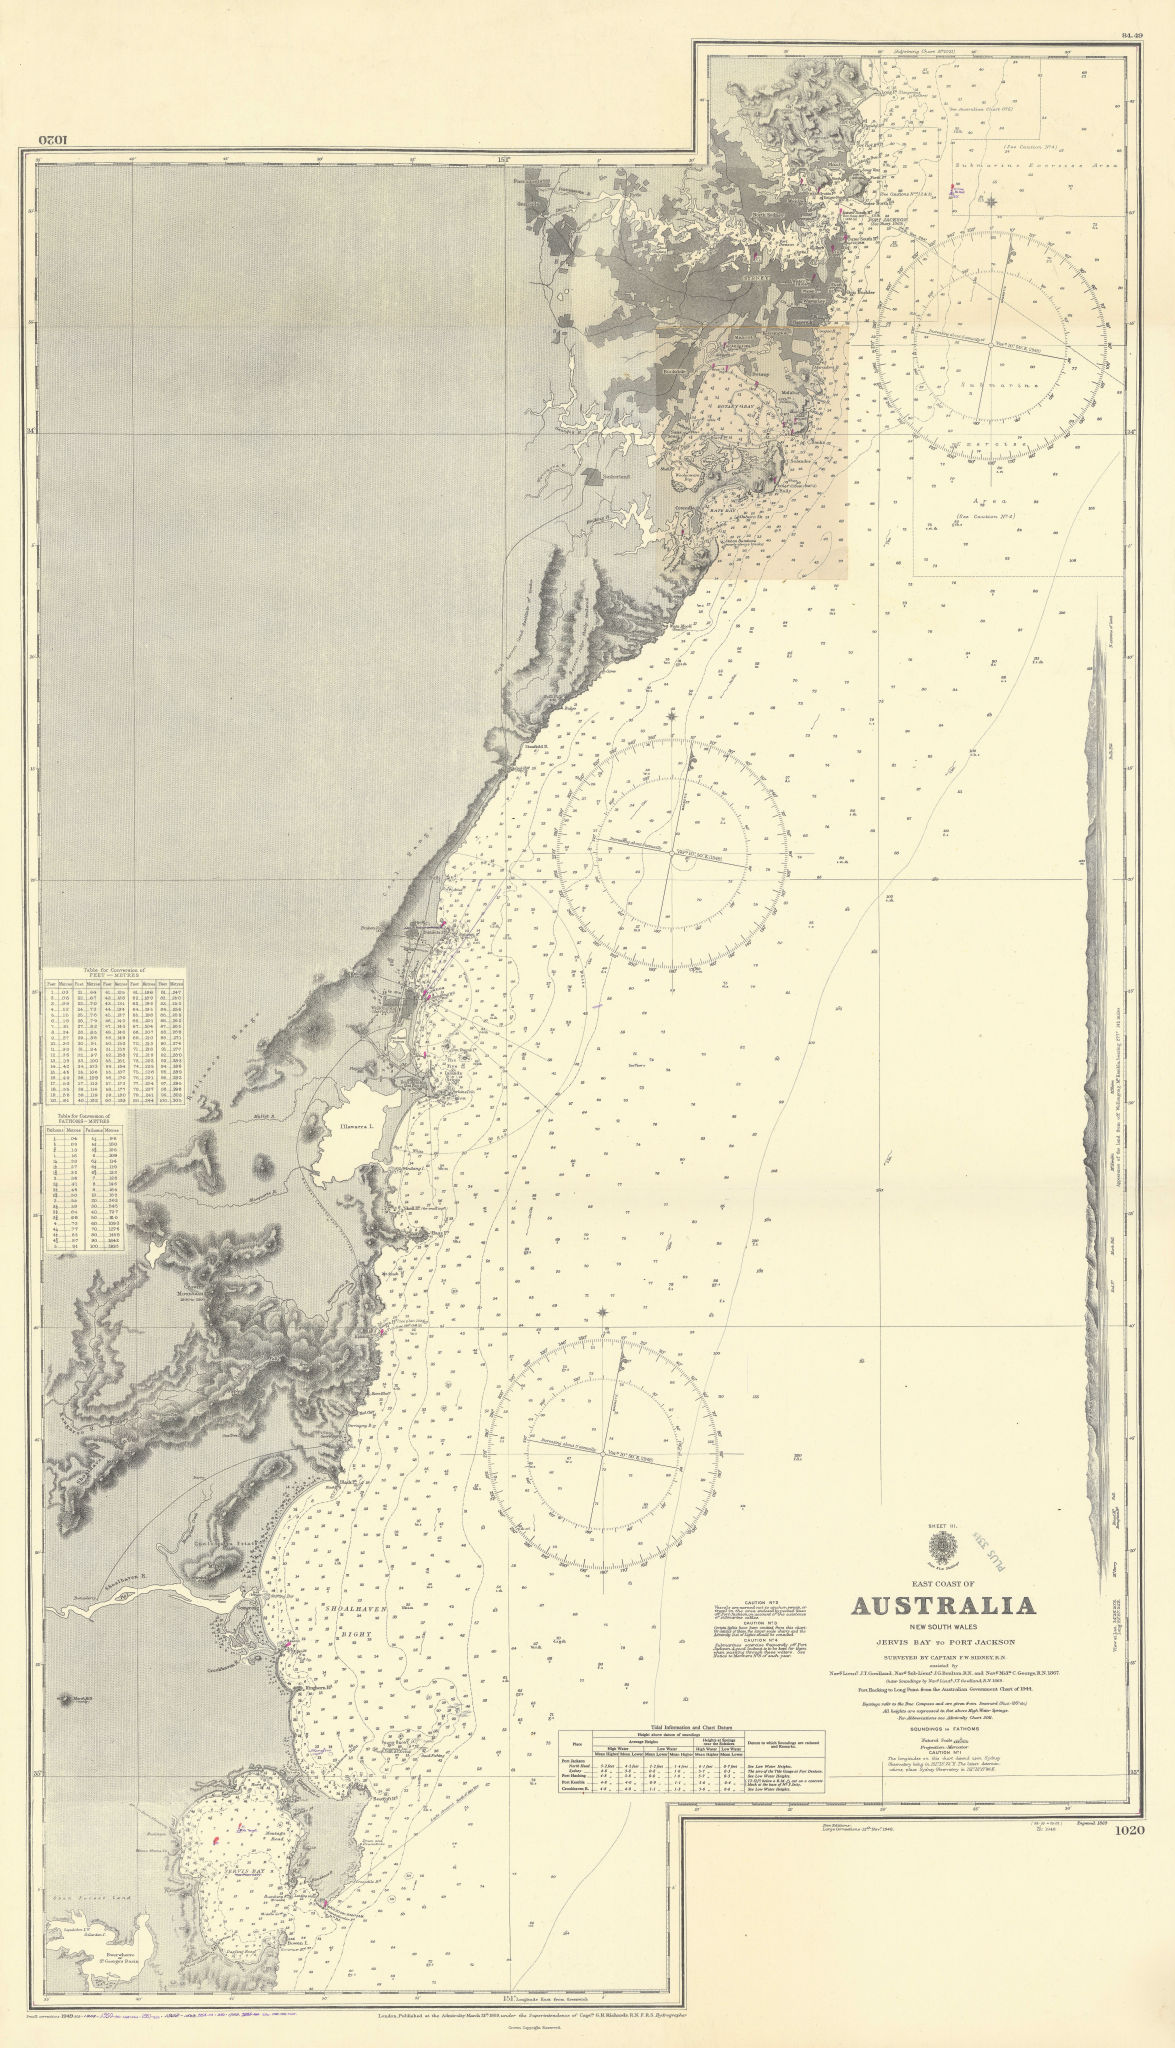 New South Wales coast. Jervis Bay to Sydney. ADMIRALTY sea chart 1869 (1955) map